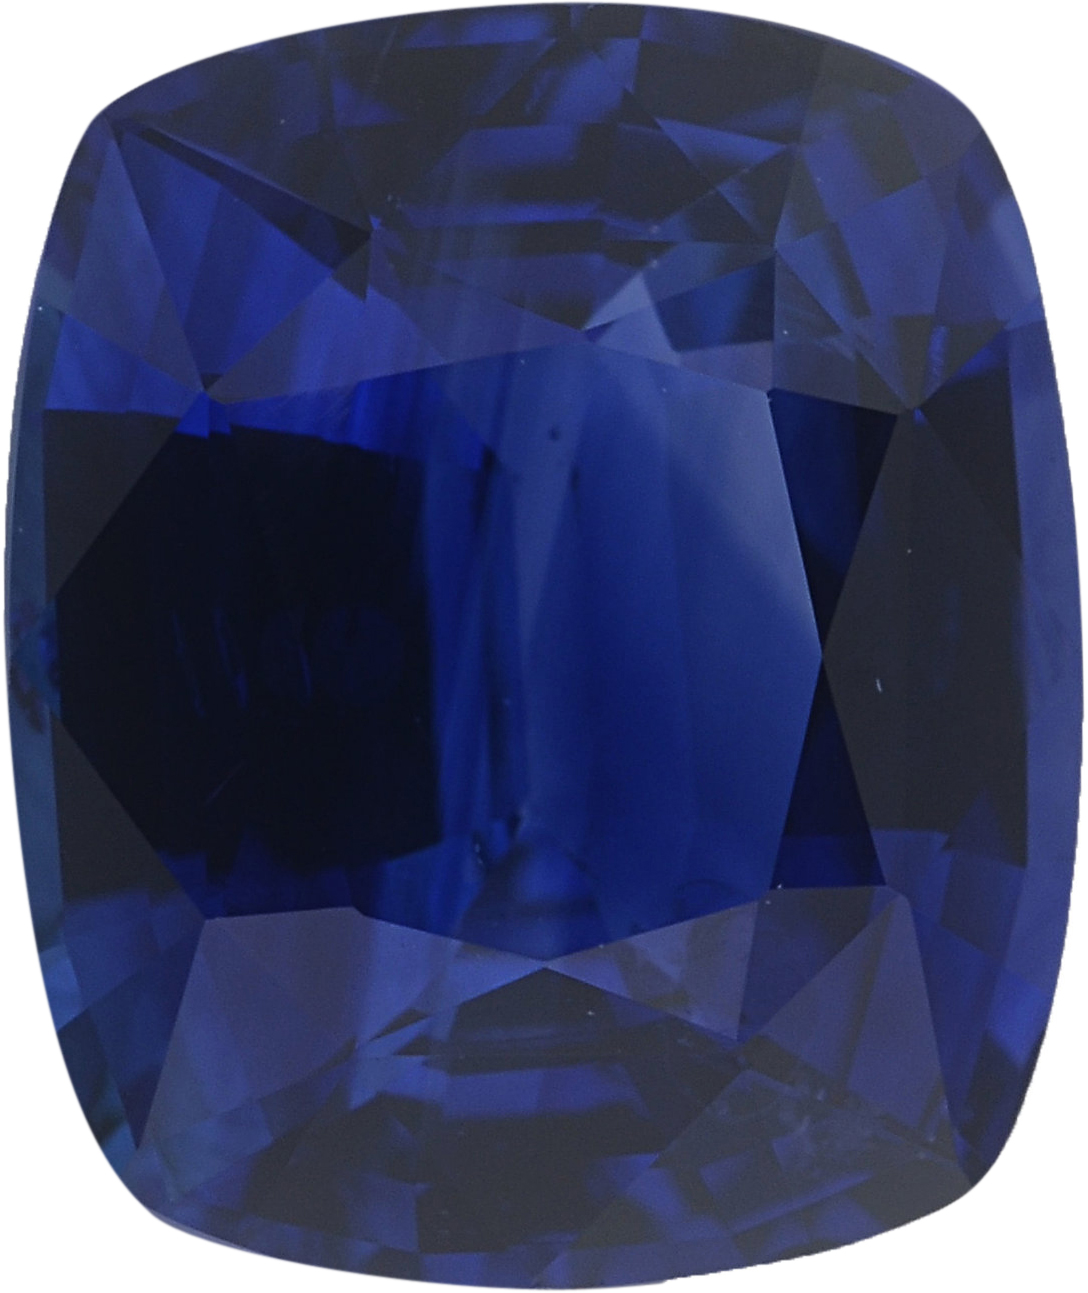 8.54 x 7.16 mm, Blue Loose Sapphire Gemstone in Antique Cushion Cut, Violetish Blue, 2.37 carats